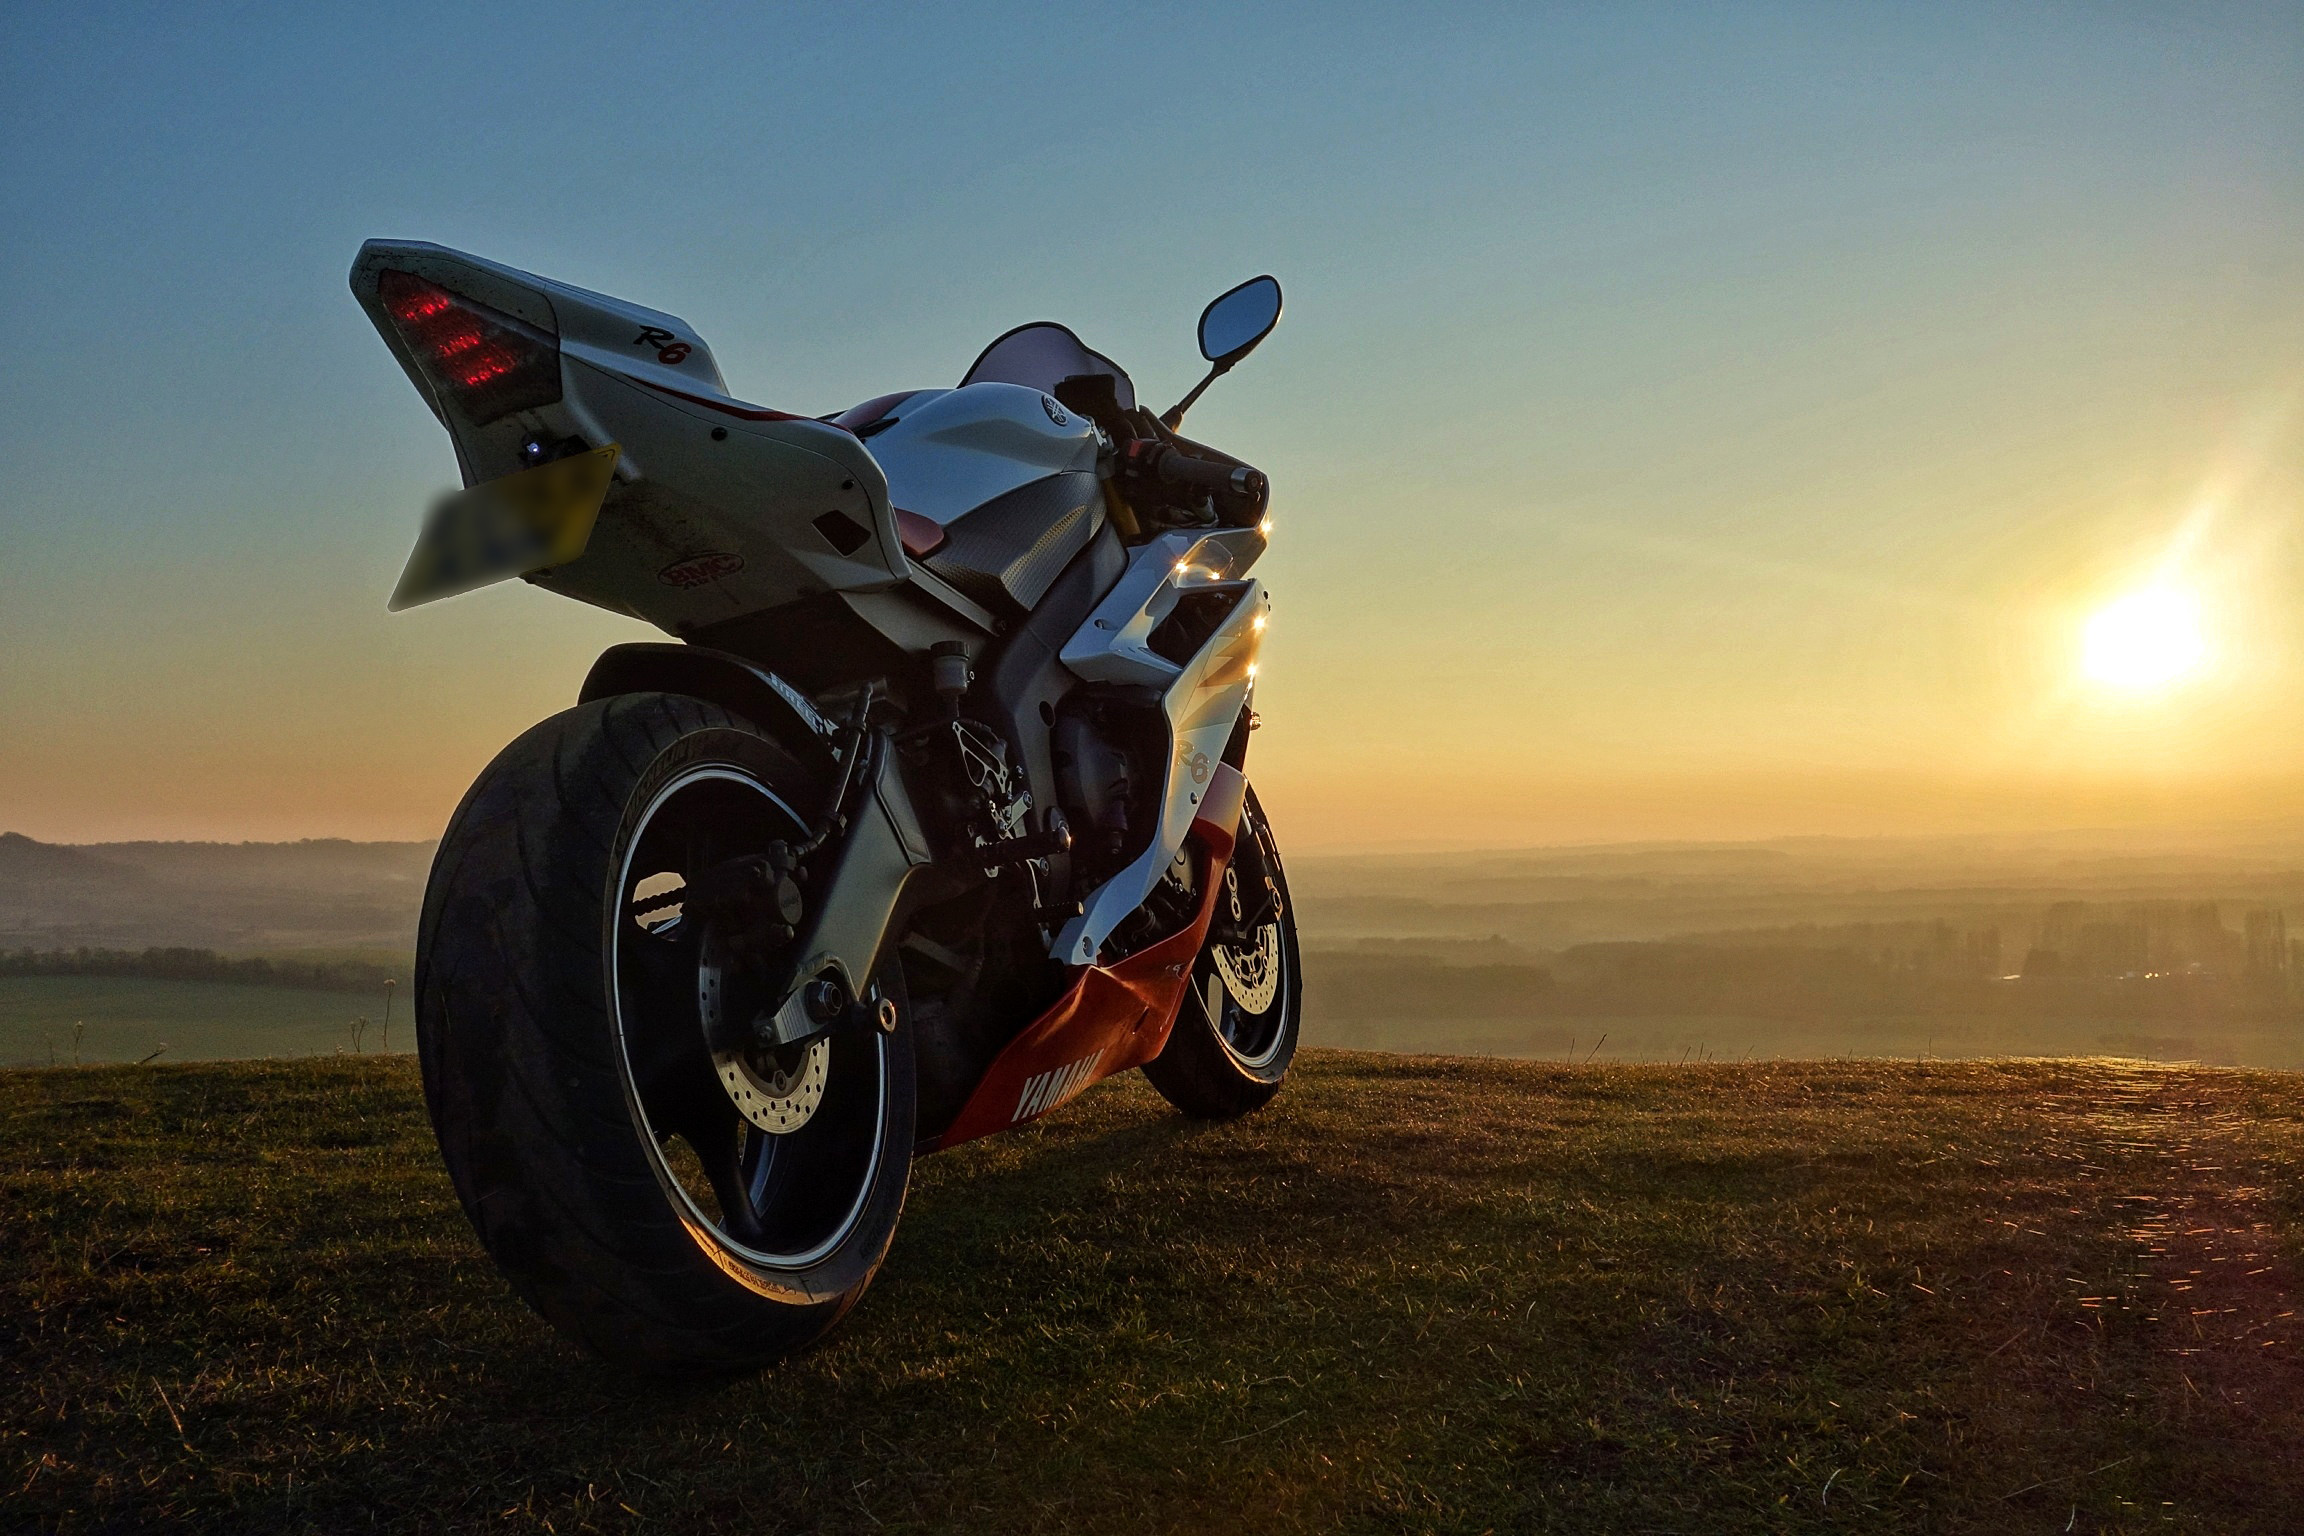 … YAMAHA R6 2006 2CO RED AND WHITE by andyedw